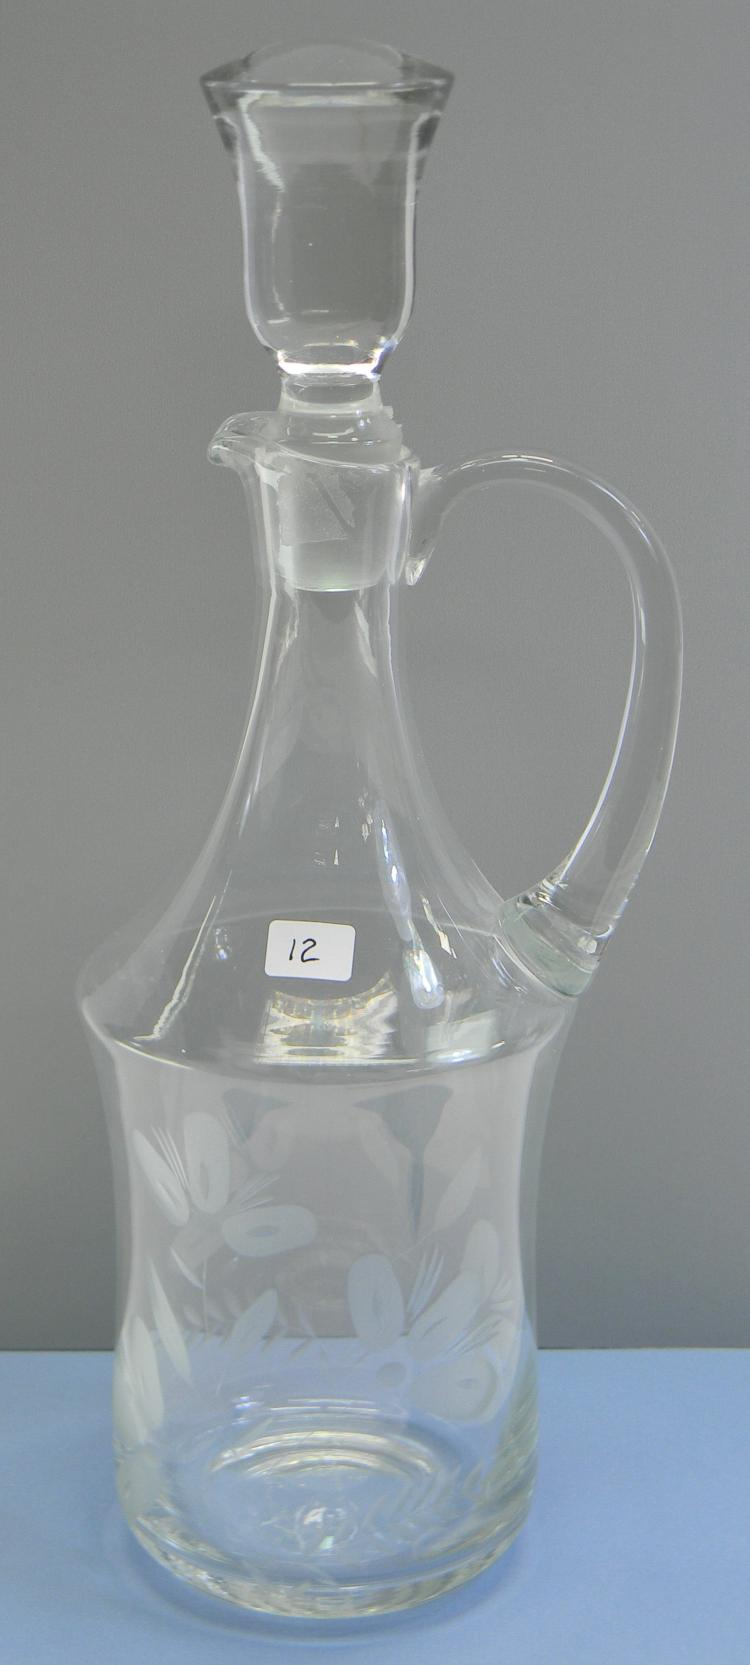 Decorative Etched Handblown Glass Decanter